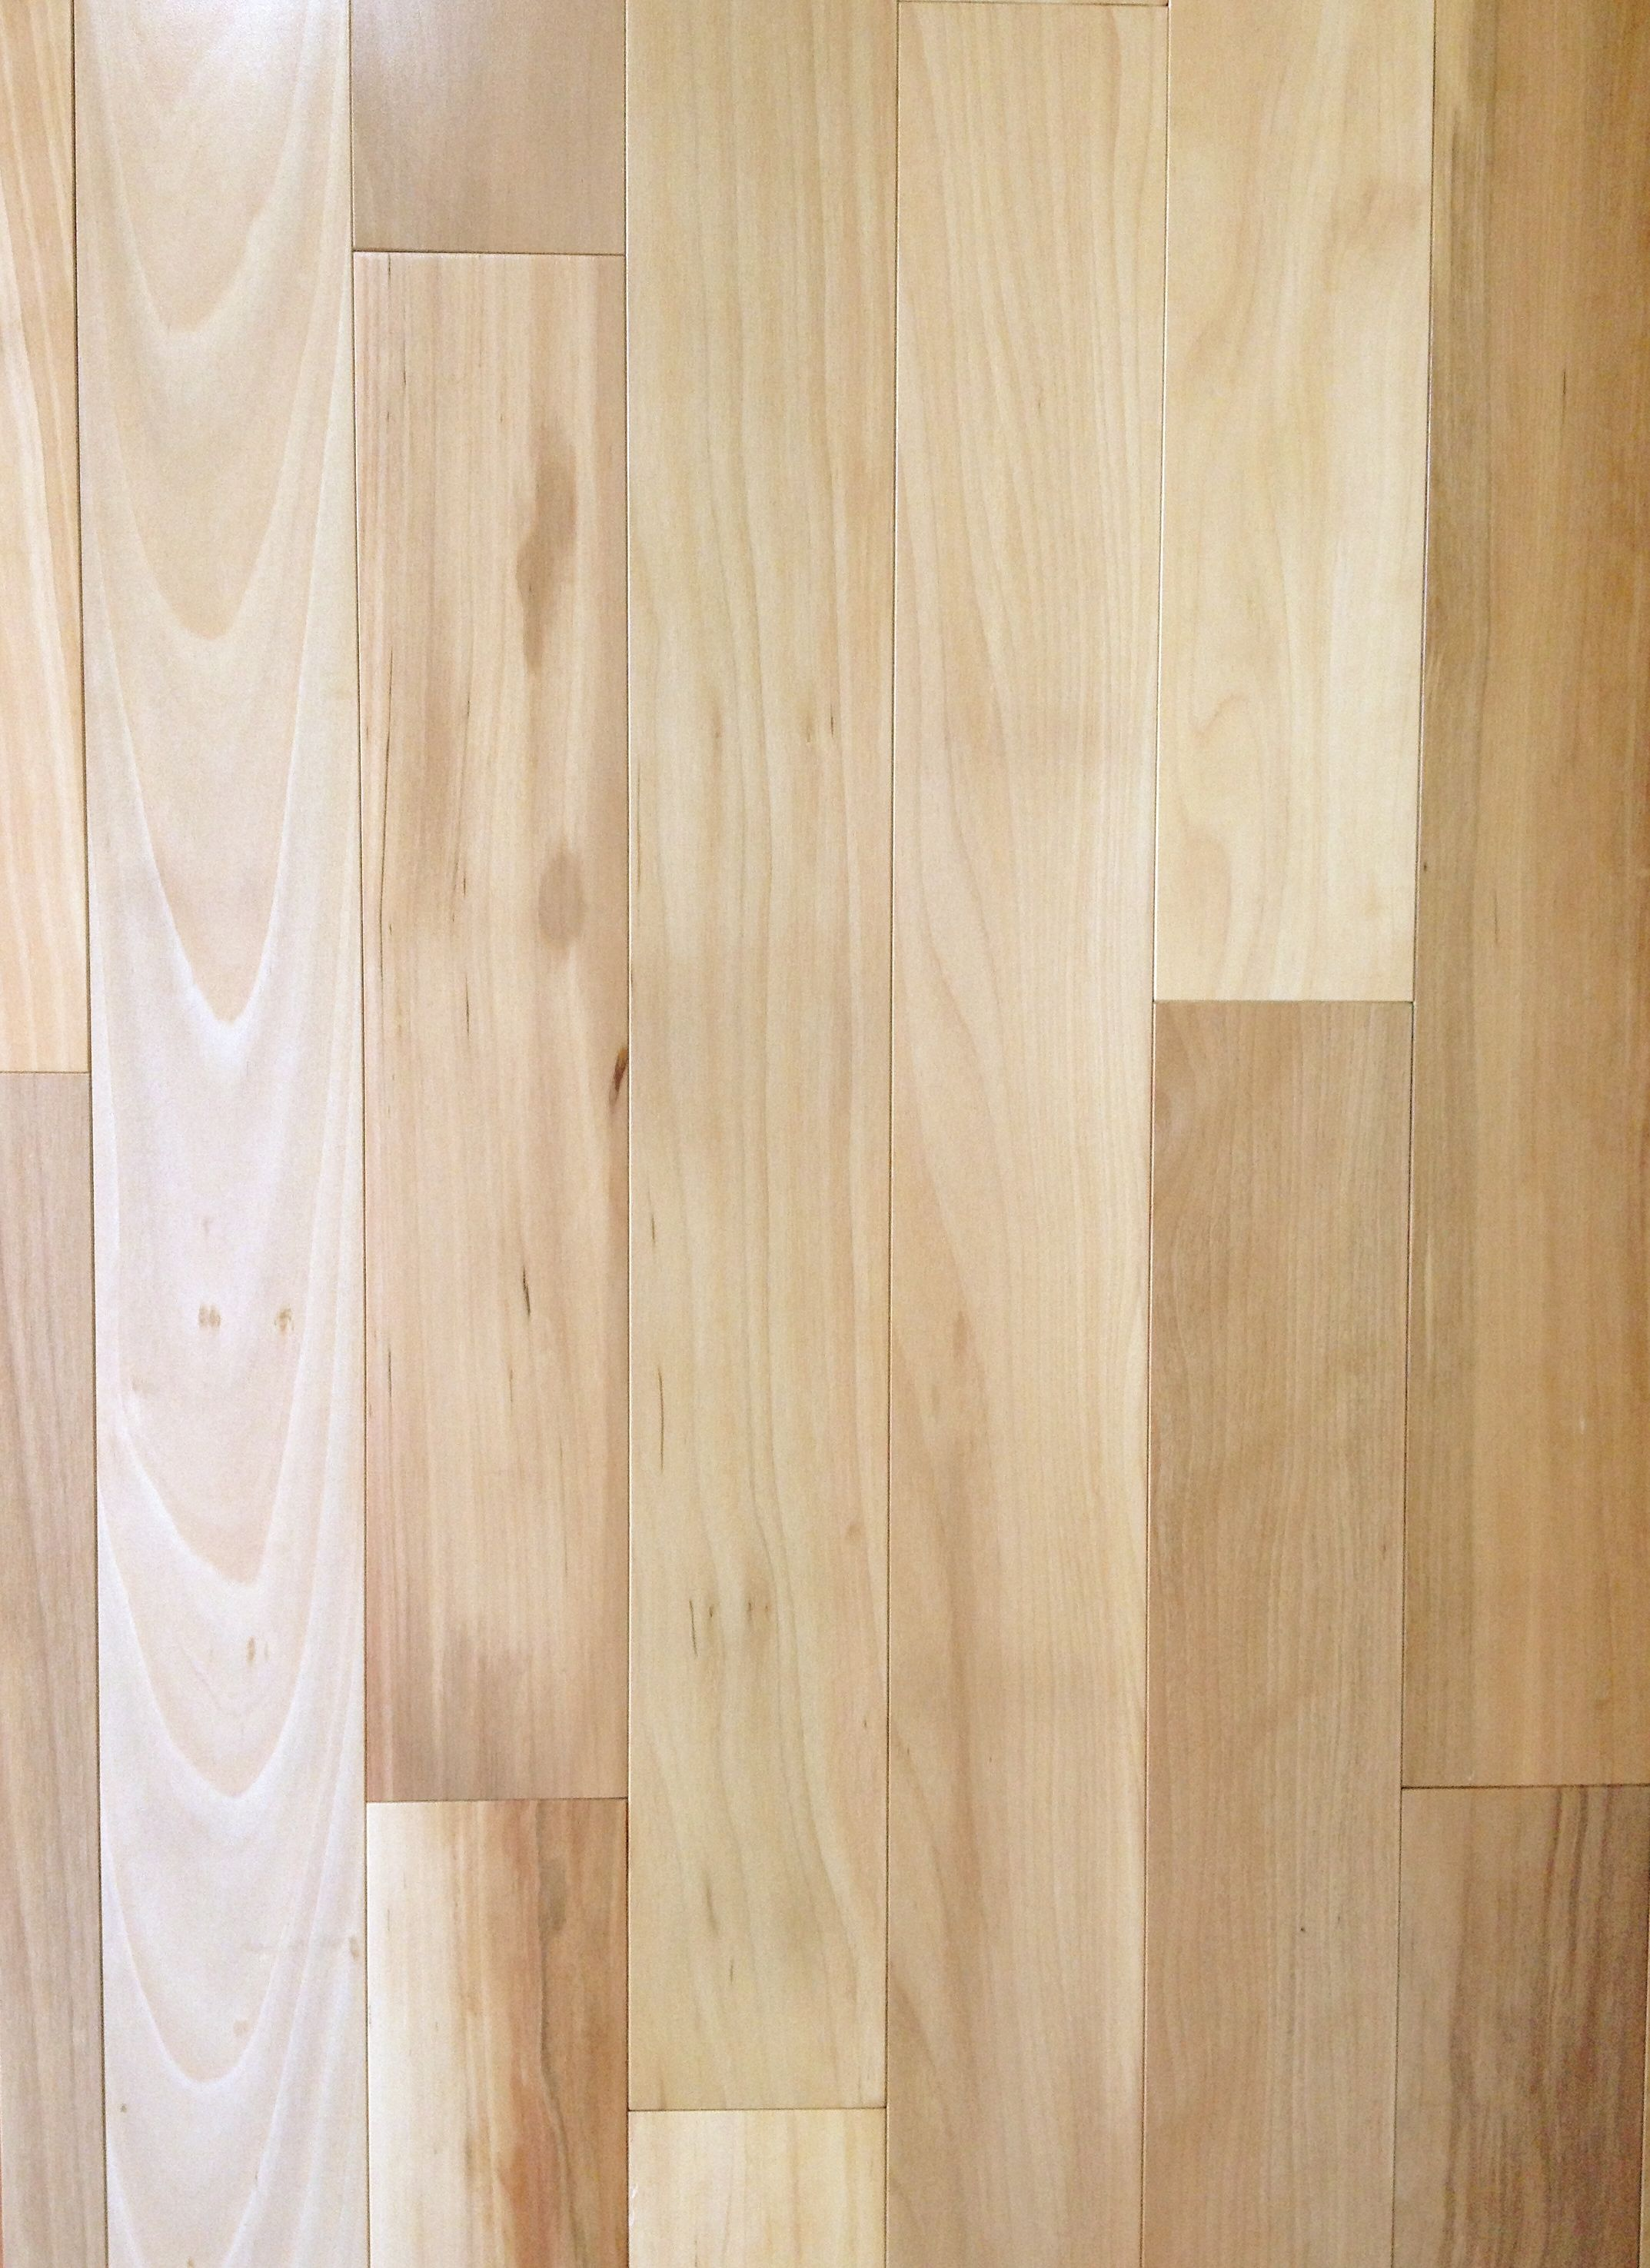 Sale Capirona Brazilian Maple S B 3 25 Only 3 99 Ft Color Natural Size 3 25 X 3 4 Grade Select And Hardwood Floors Brazilian Hardwood Cherry Hardwood